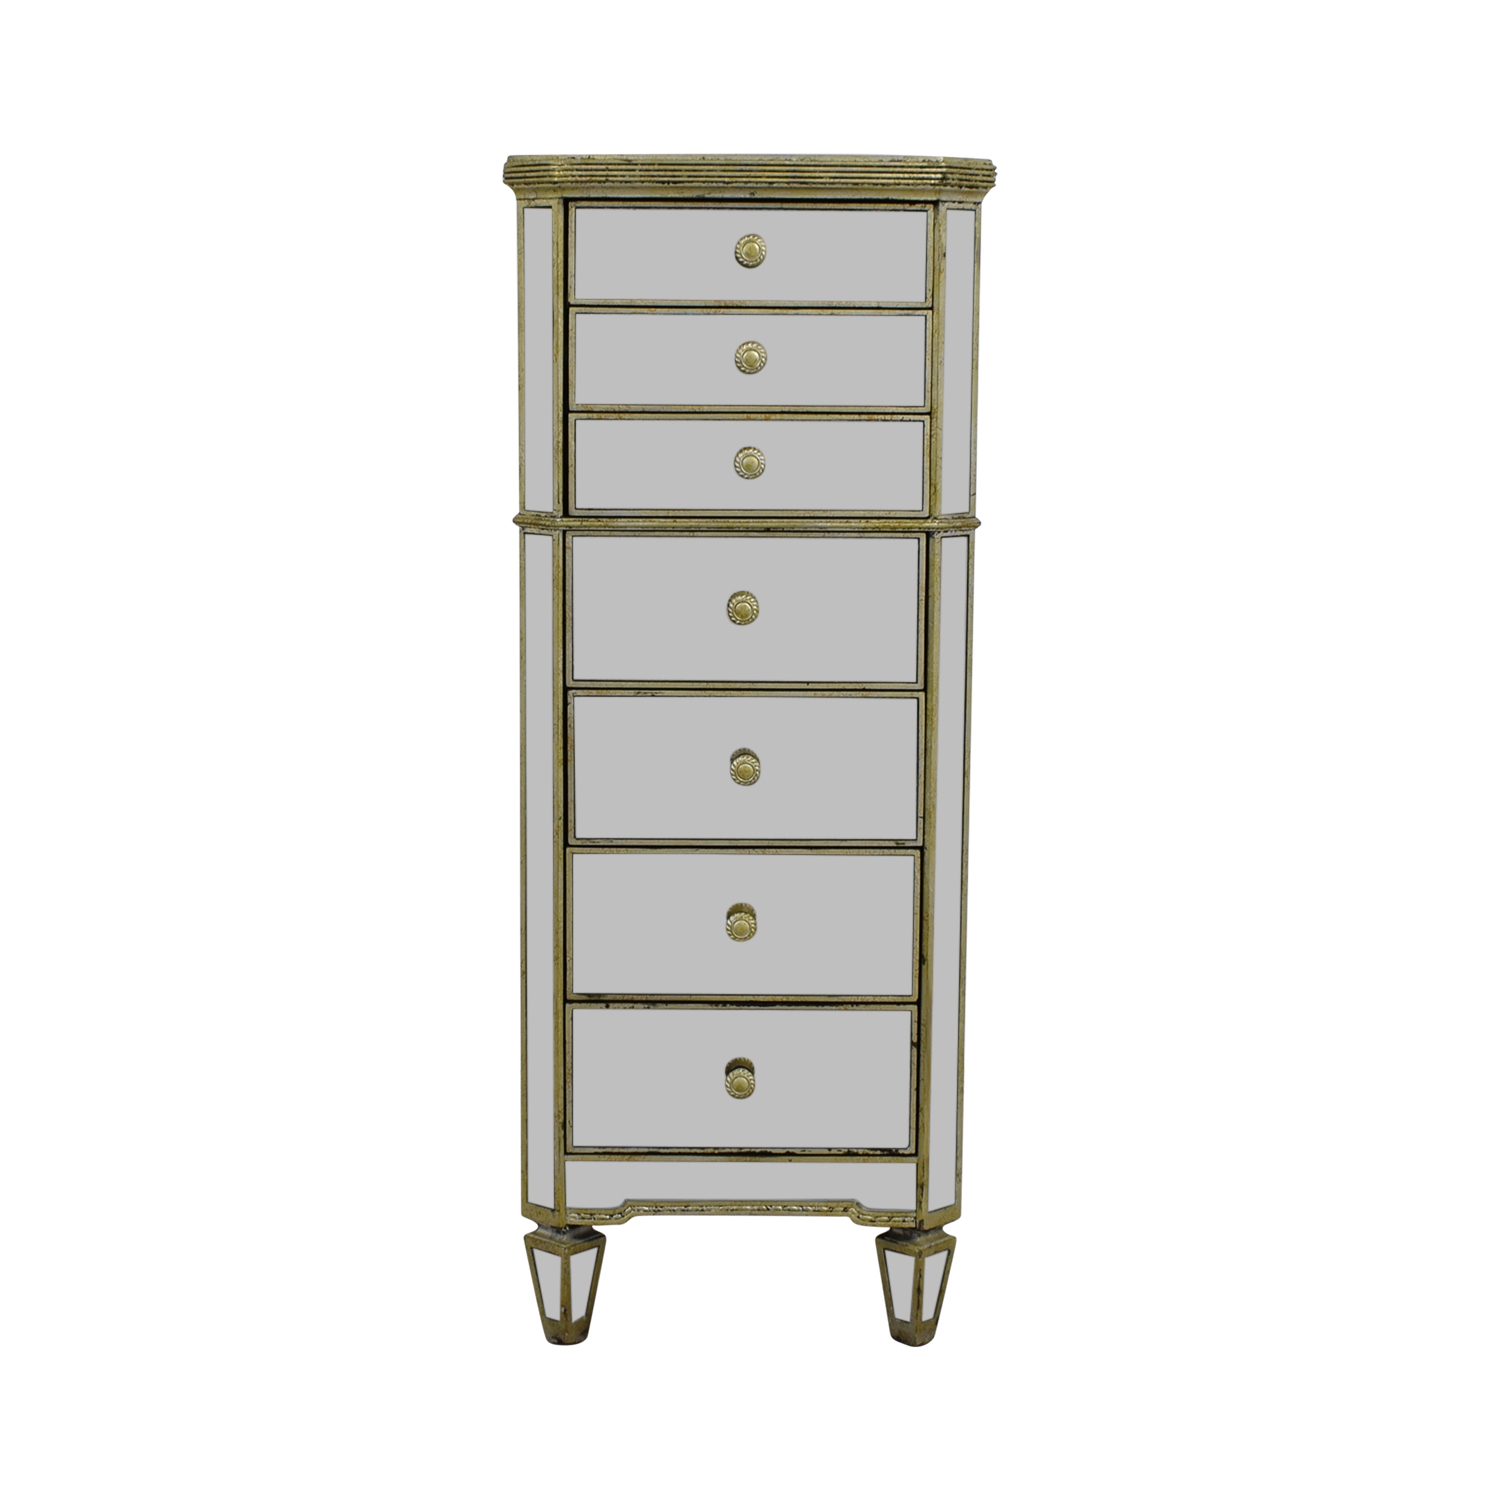 Horchow Horchow Mirrored Seven-Drawer Tall Chest Dresser dimensions